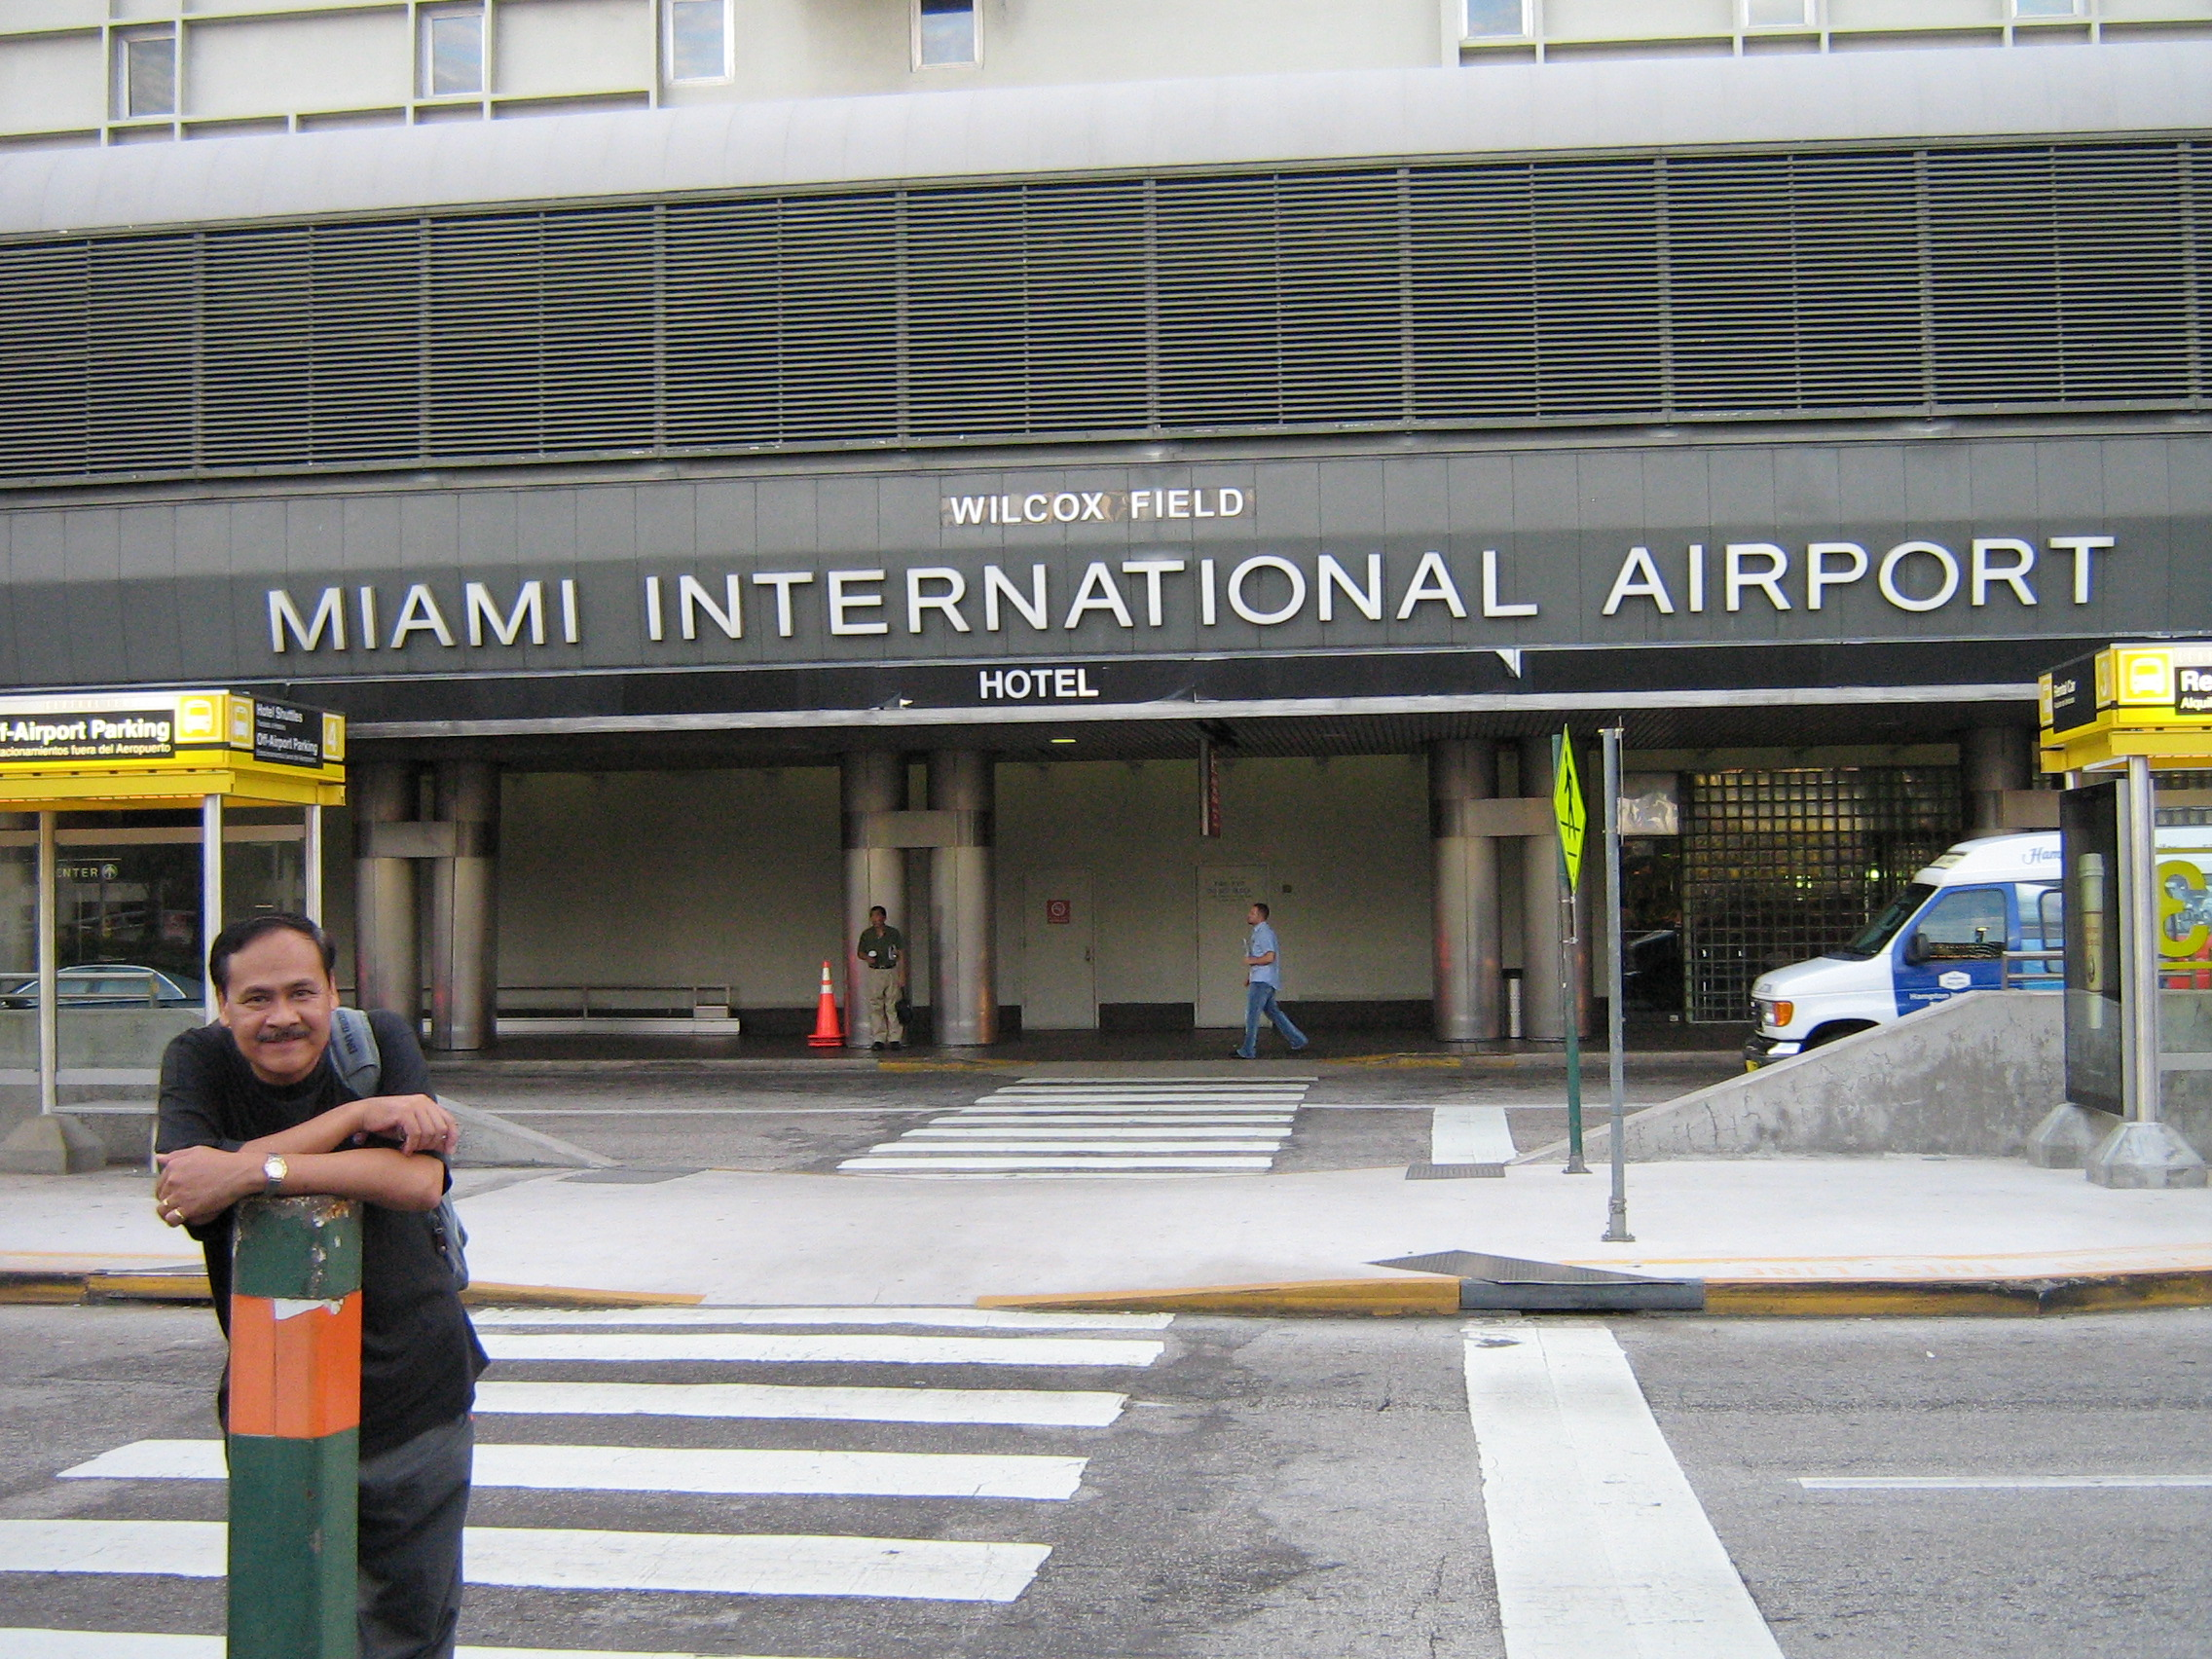 Miami International Airport Hotel Day Use